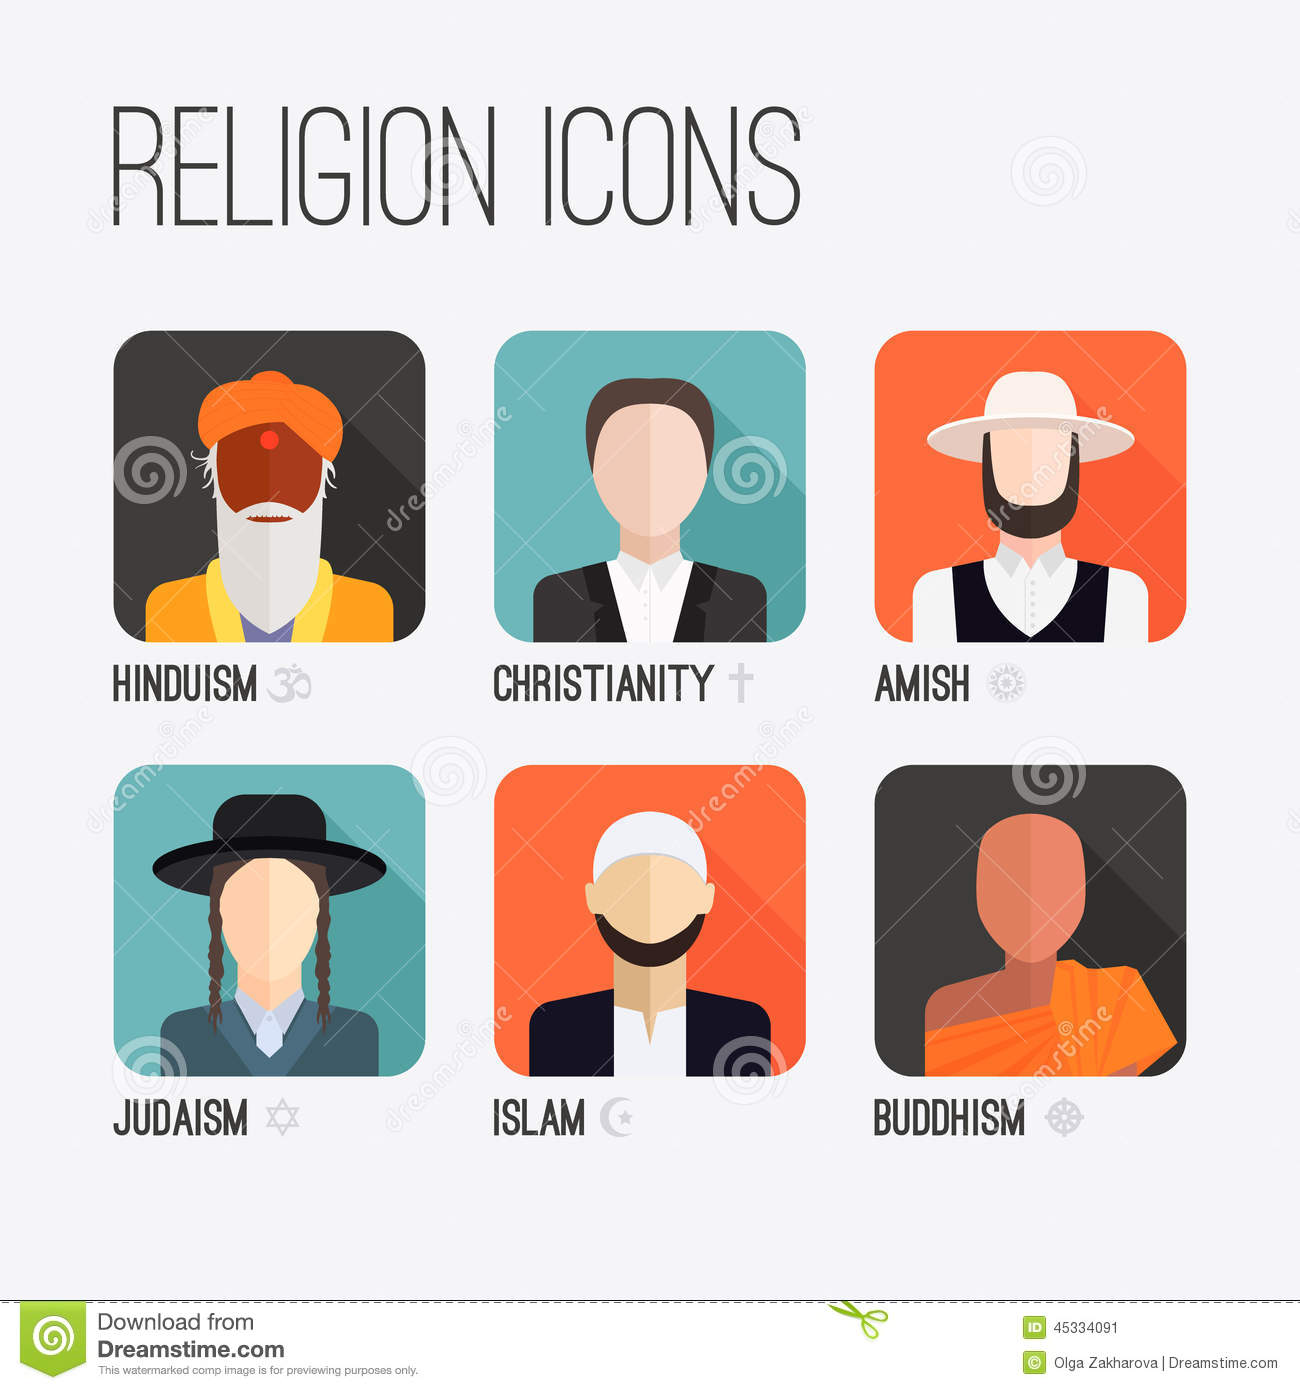 Differences between Hinduism and Judaism